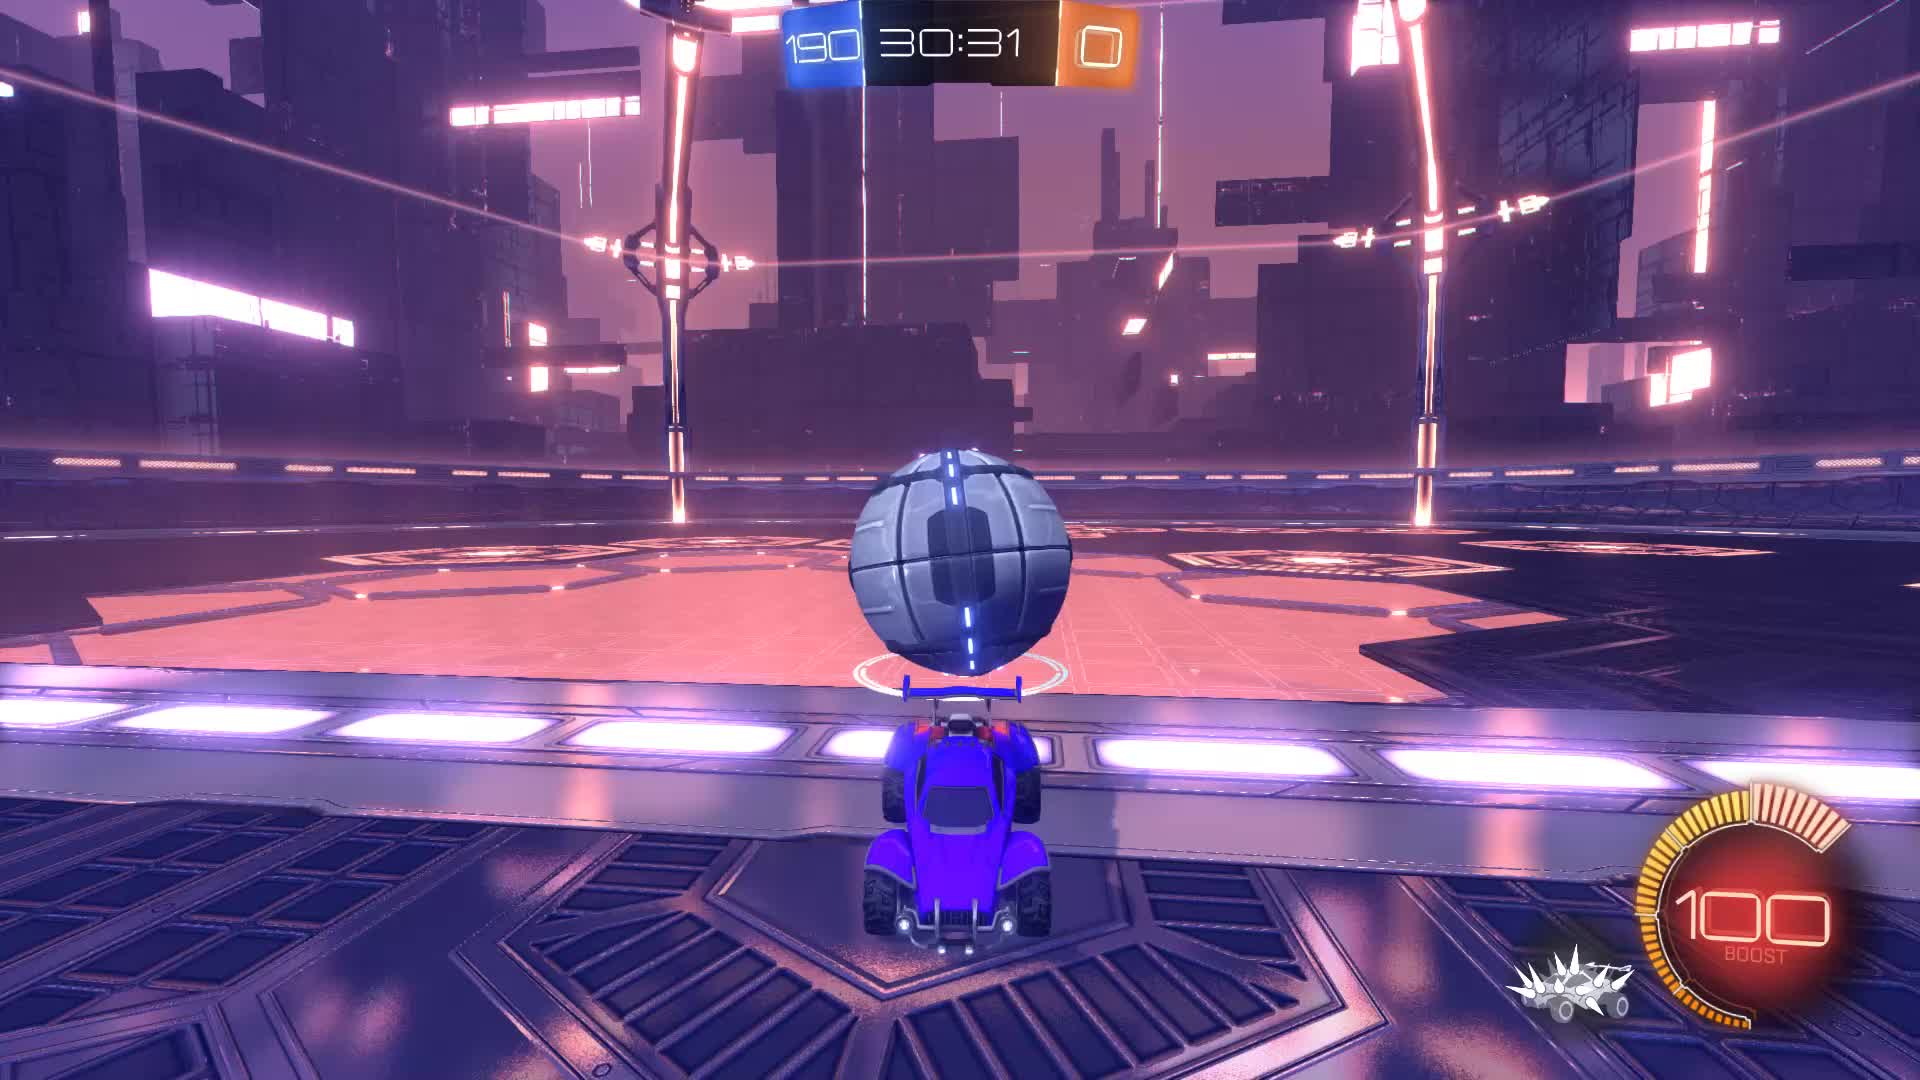 Gif Your Game, GifYourGame, Goal, Rocket League, RocketLeague, andrusha22011, Goal 195: andrusha22011 GIFs